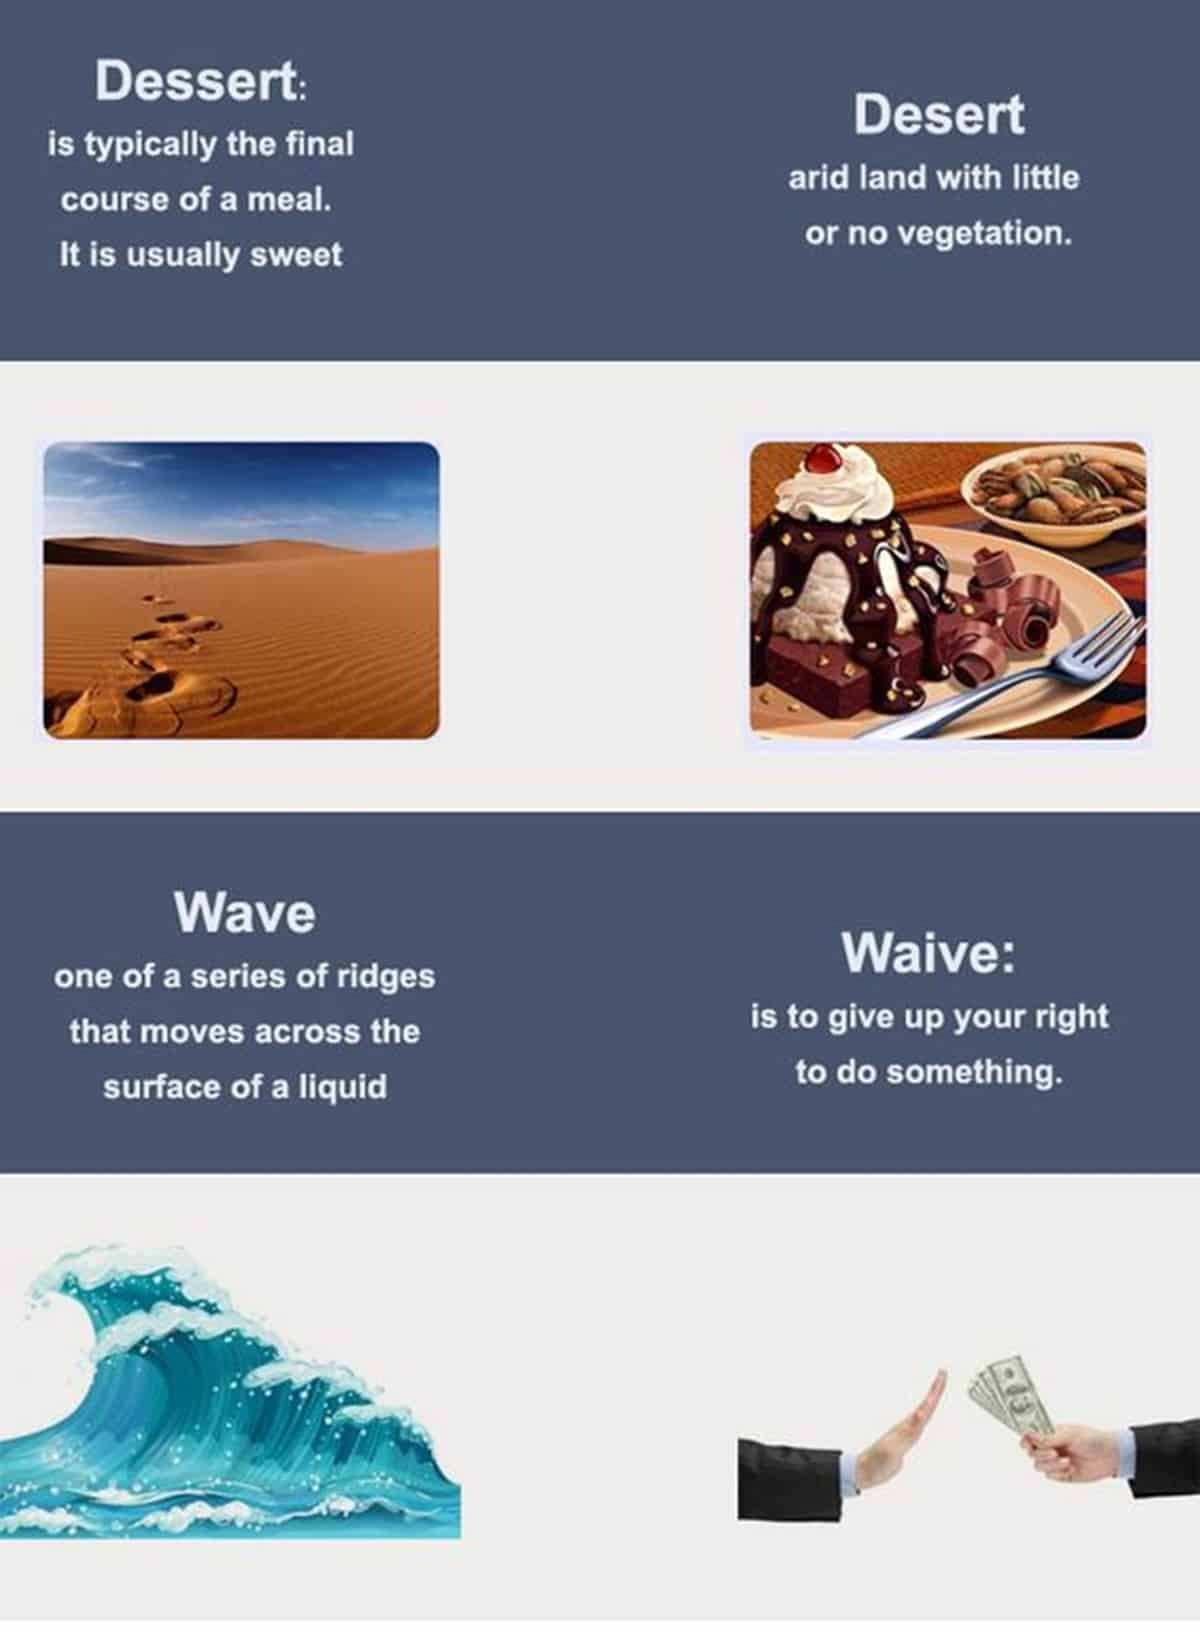 DESSERT - DESERT / WAVE - WAIVE